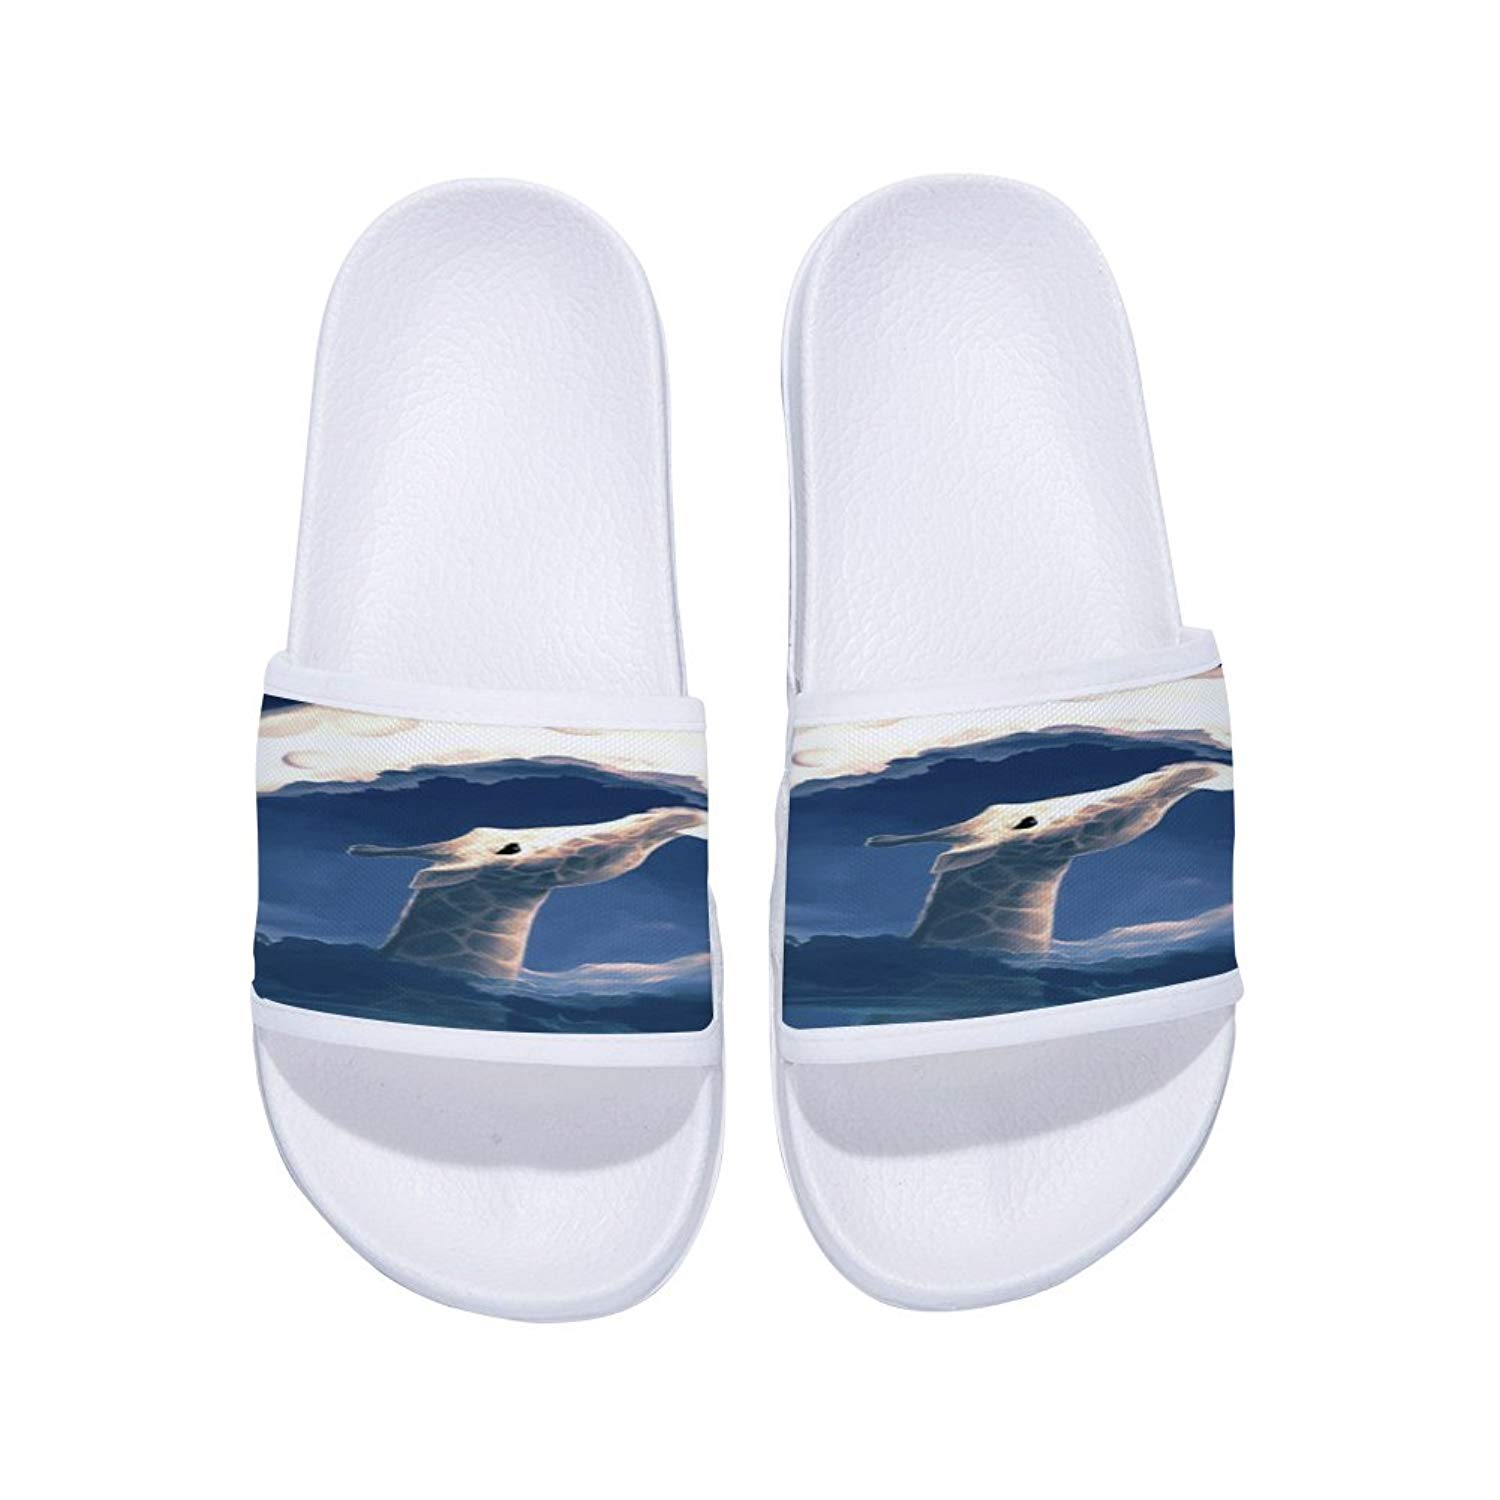 Little Kid//Big Kid Jeremy Stone Beach Sandals for Boys Girl Comfortable Soft Sole Shower Slippers